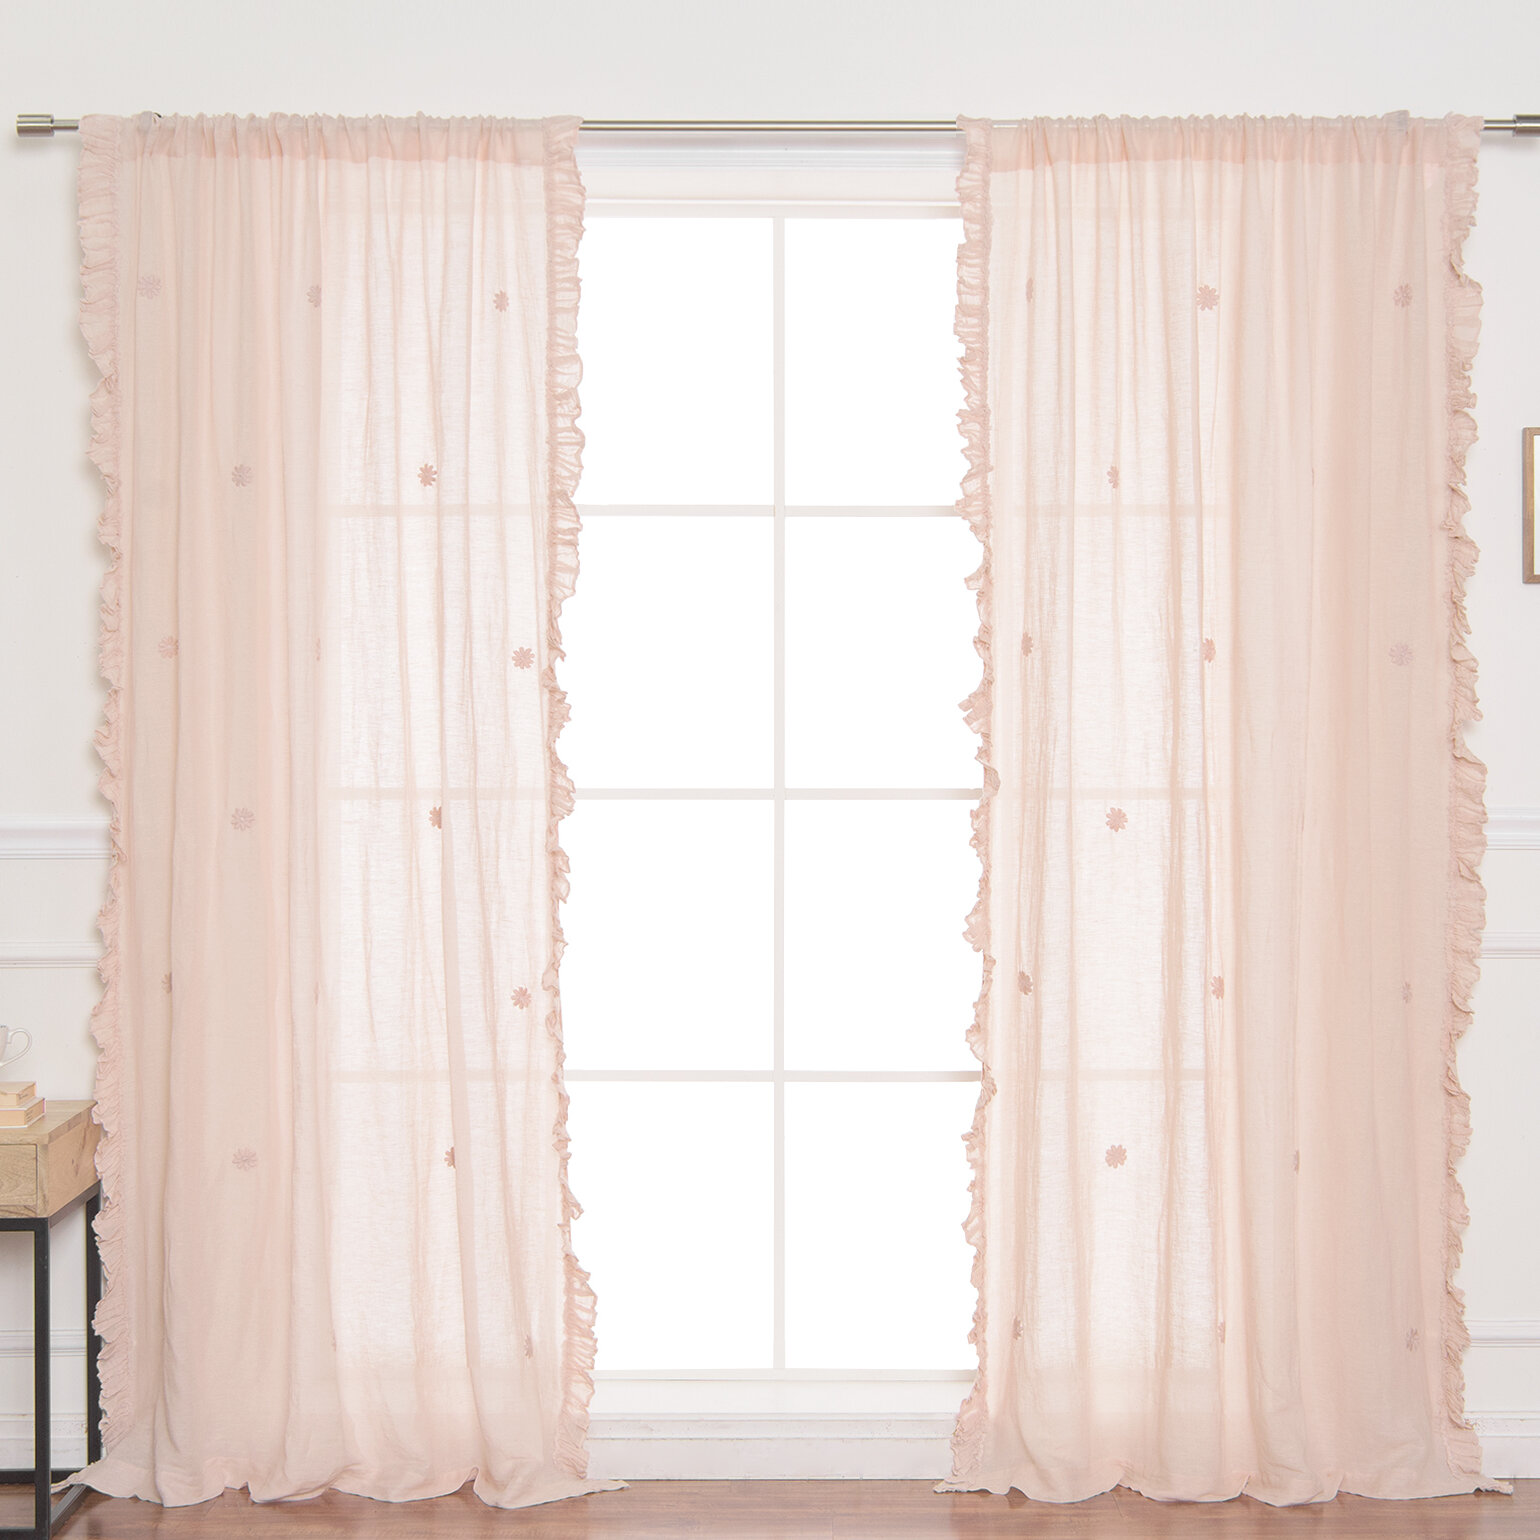 Attached Valance Style Double Layer Lace Curtains Princess Pink Ruffle Curtains 2 Panels For Girls Bedroom Curtains Blinds Shutters